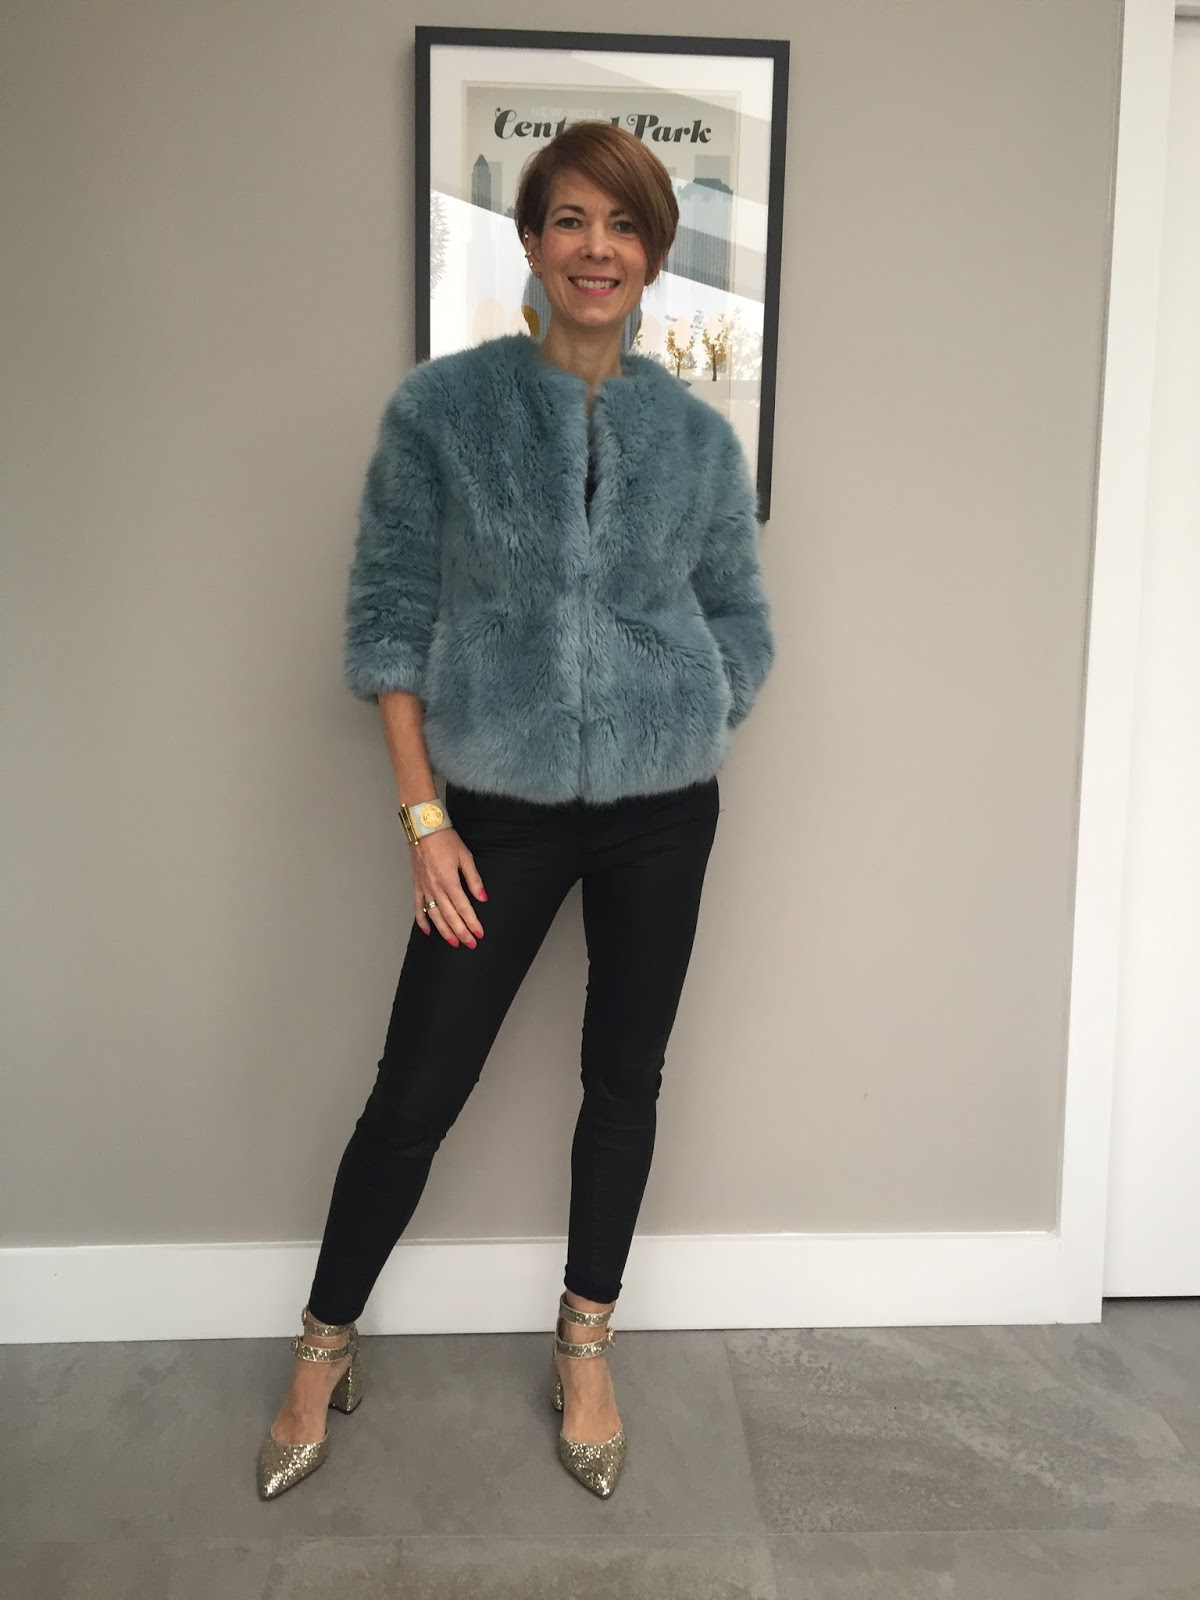 The tale of the Fur coat and its changing colour…